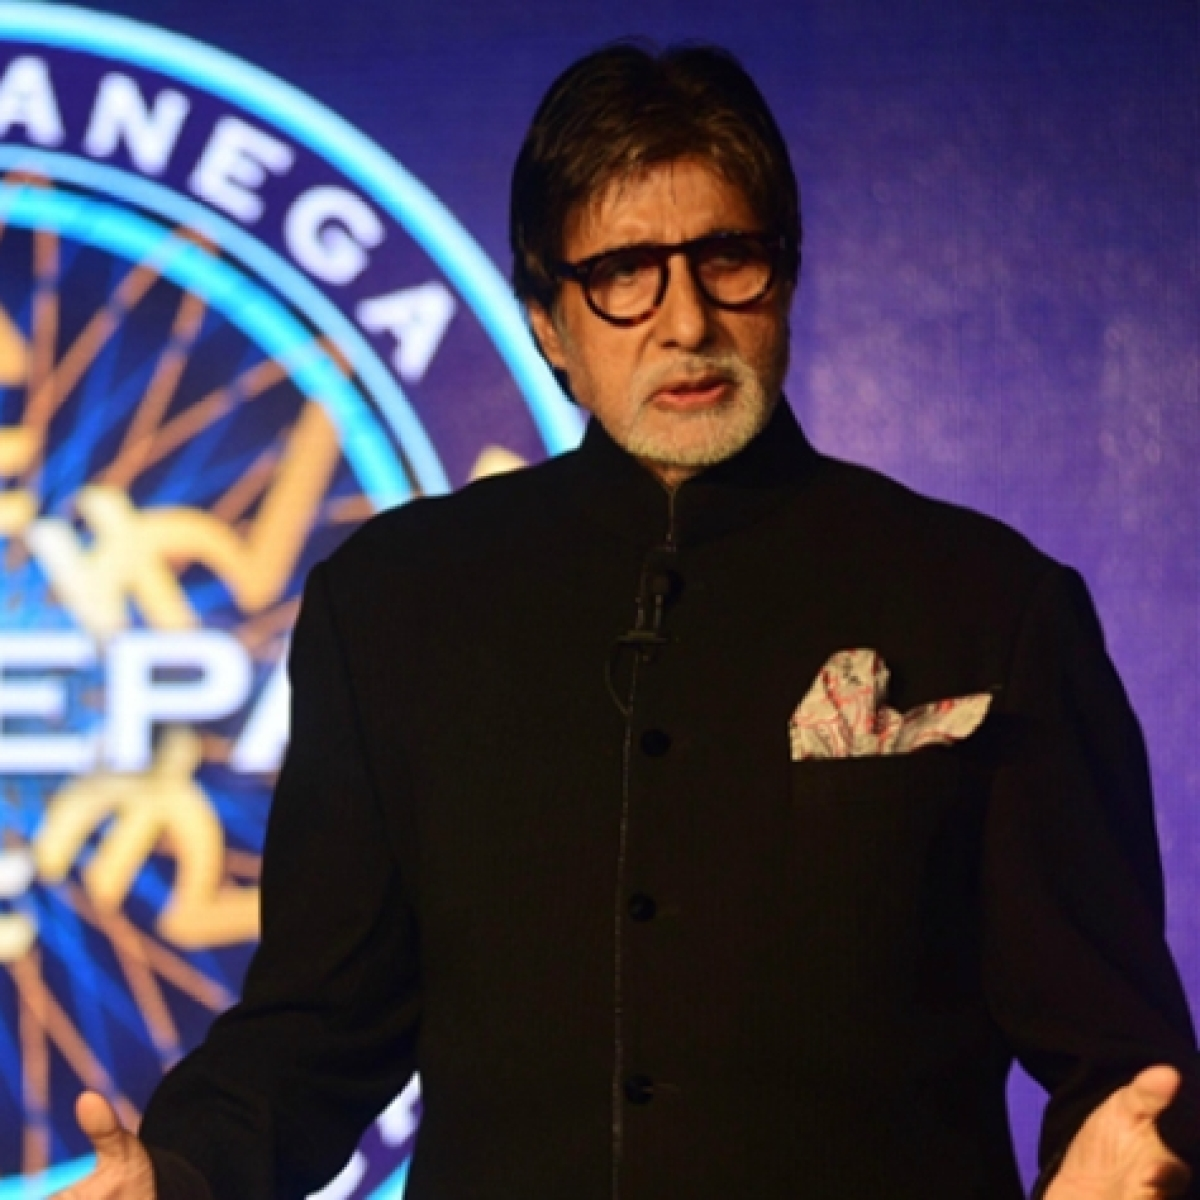 Amitabh Bachchan's 'Kaun Banega Crorepati' to return with season 13, registrations begin from May 10